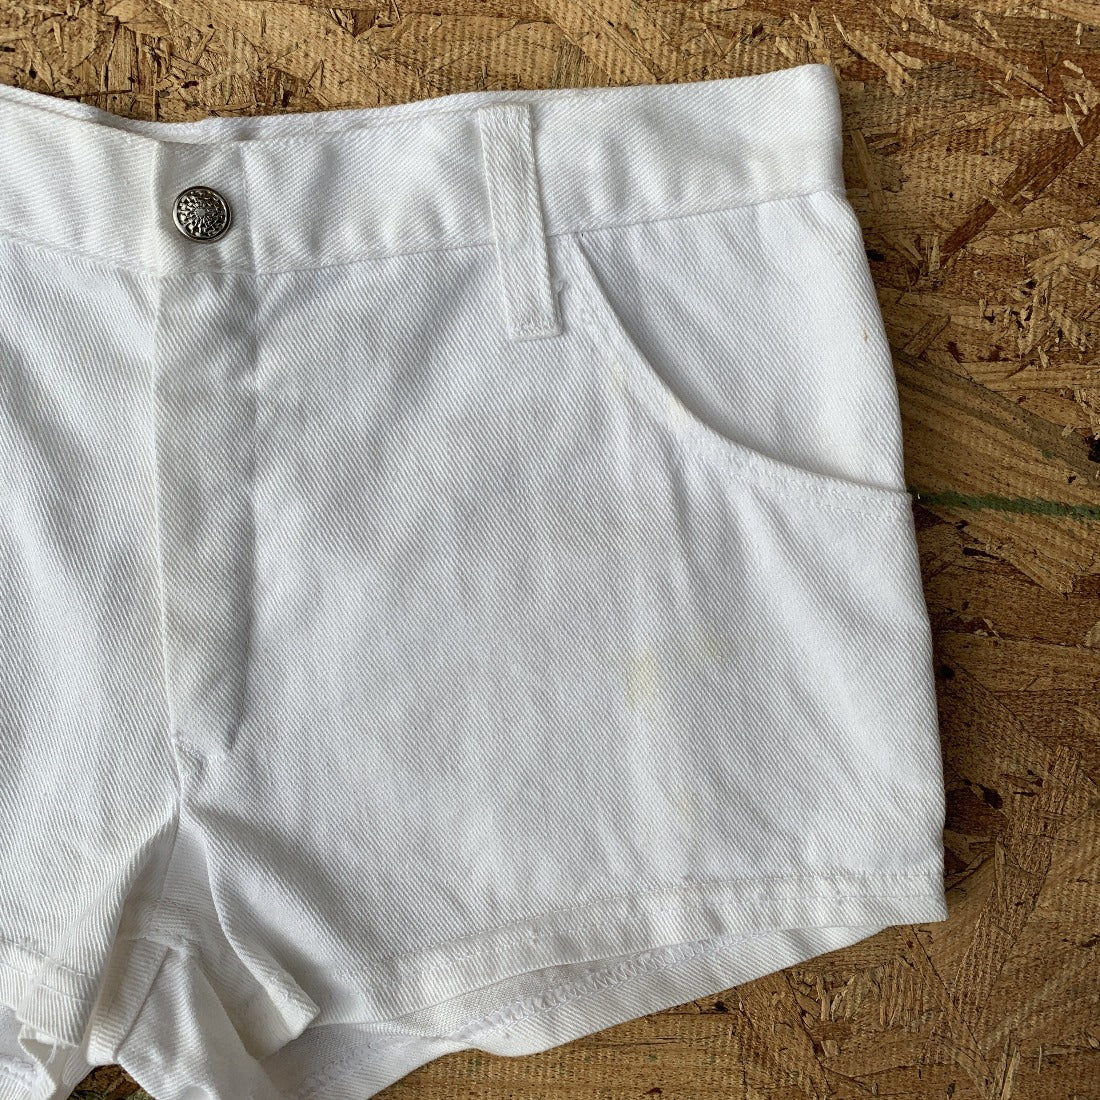 70s Sears White Denim Shorts | 26